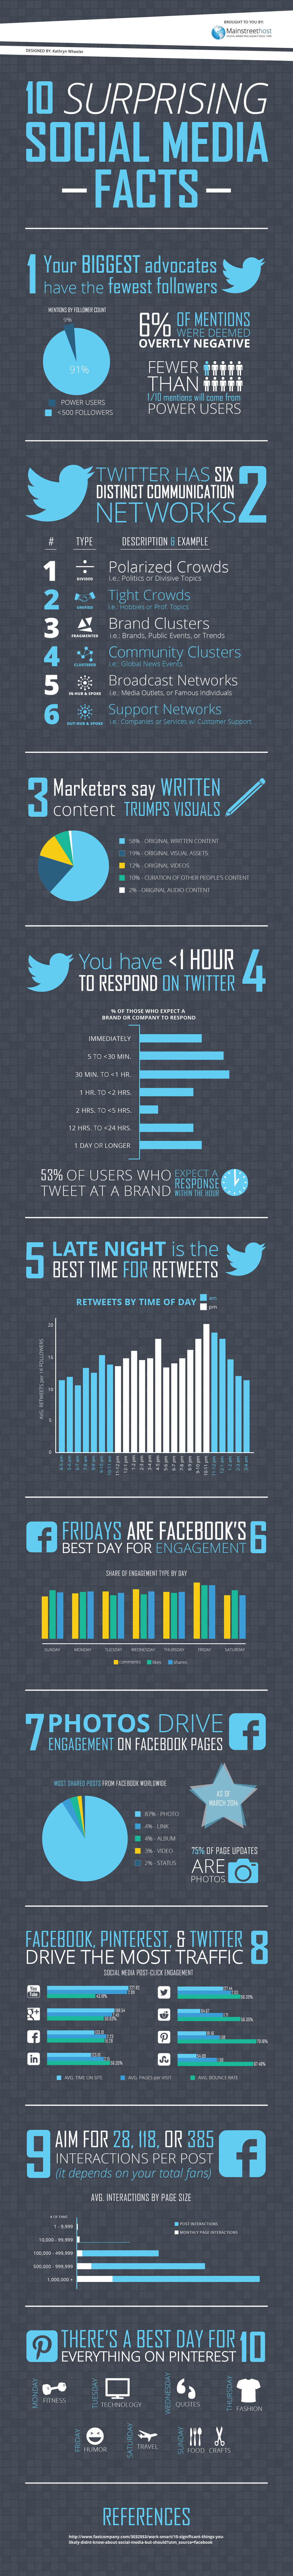 10 Surprising Social Media Facts [Infographic] image 10 Facts infographic Final 01